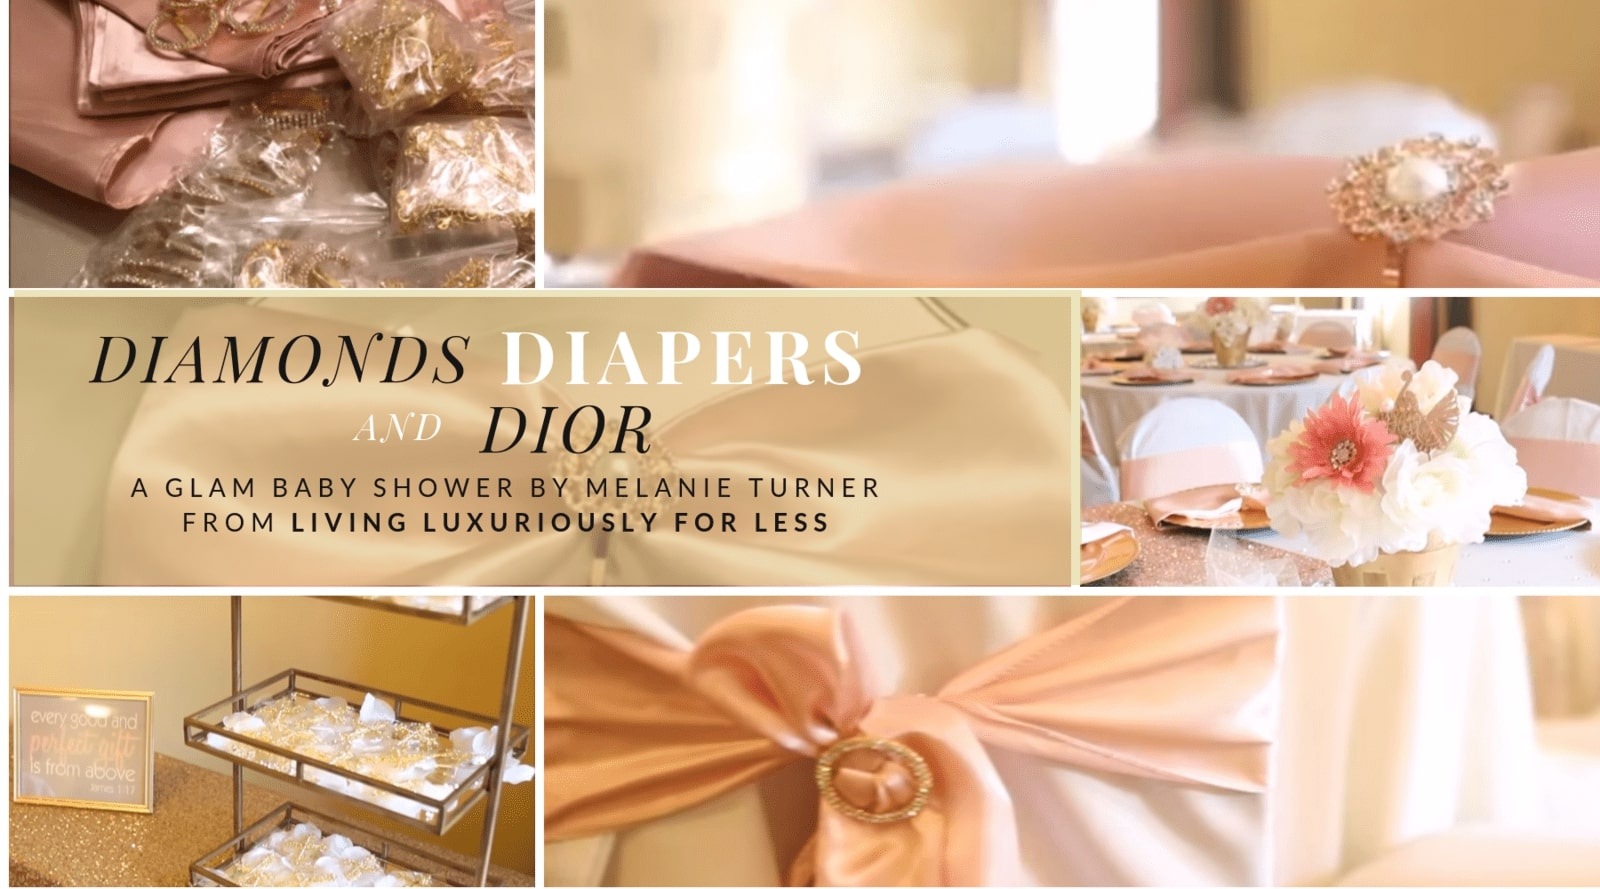 Melanie Turner Diamonds, Diapers, and Dior